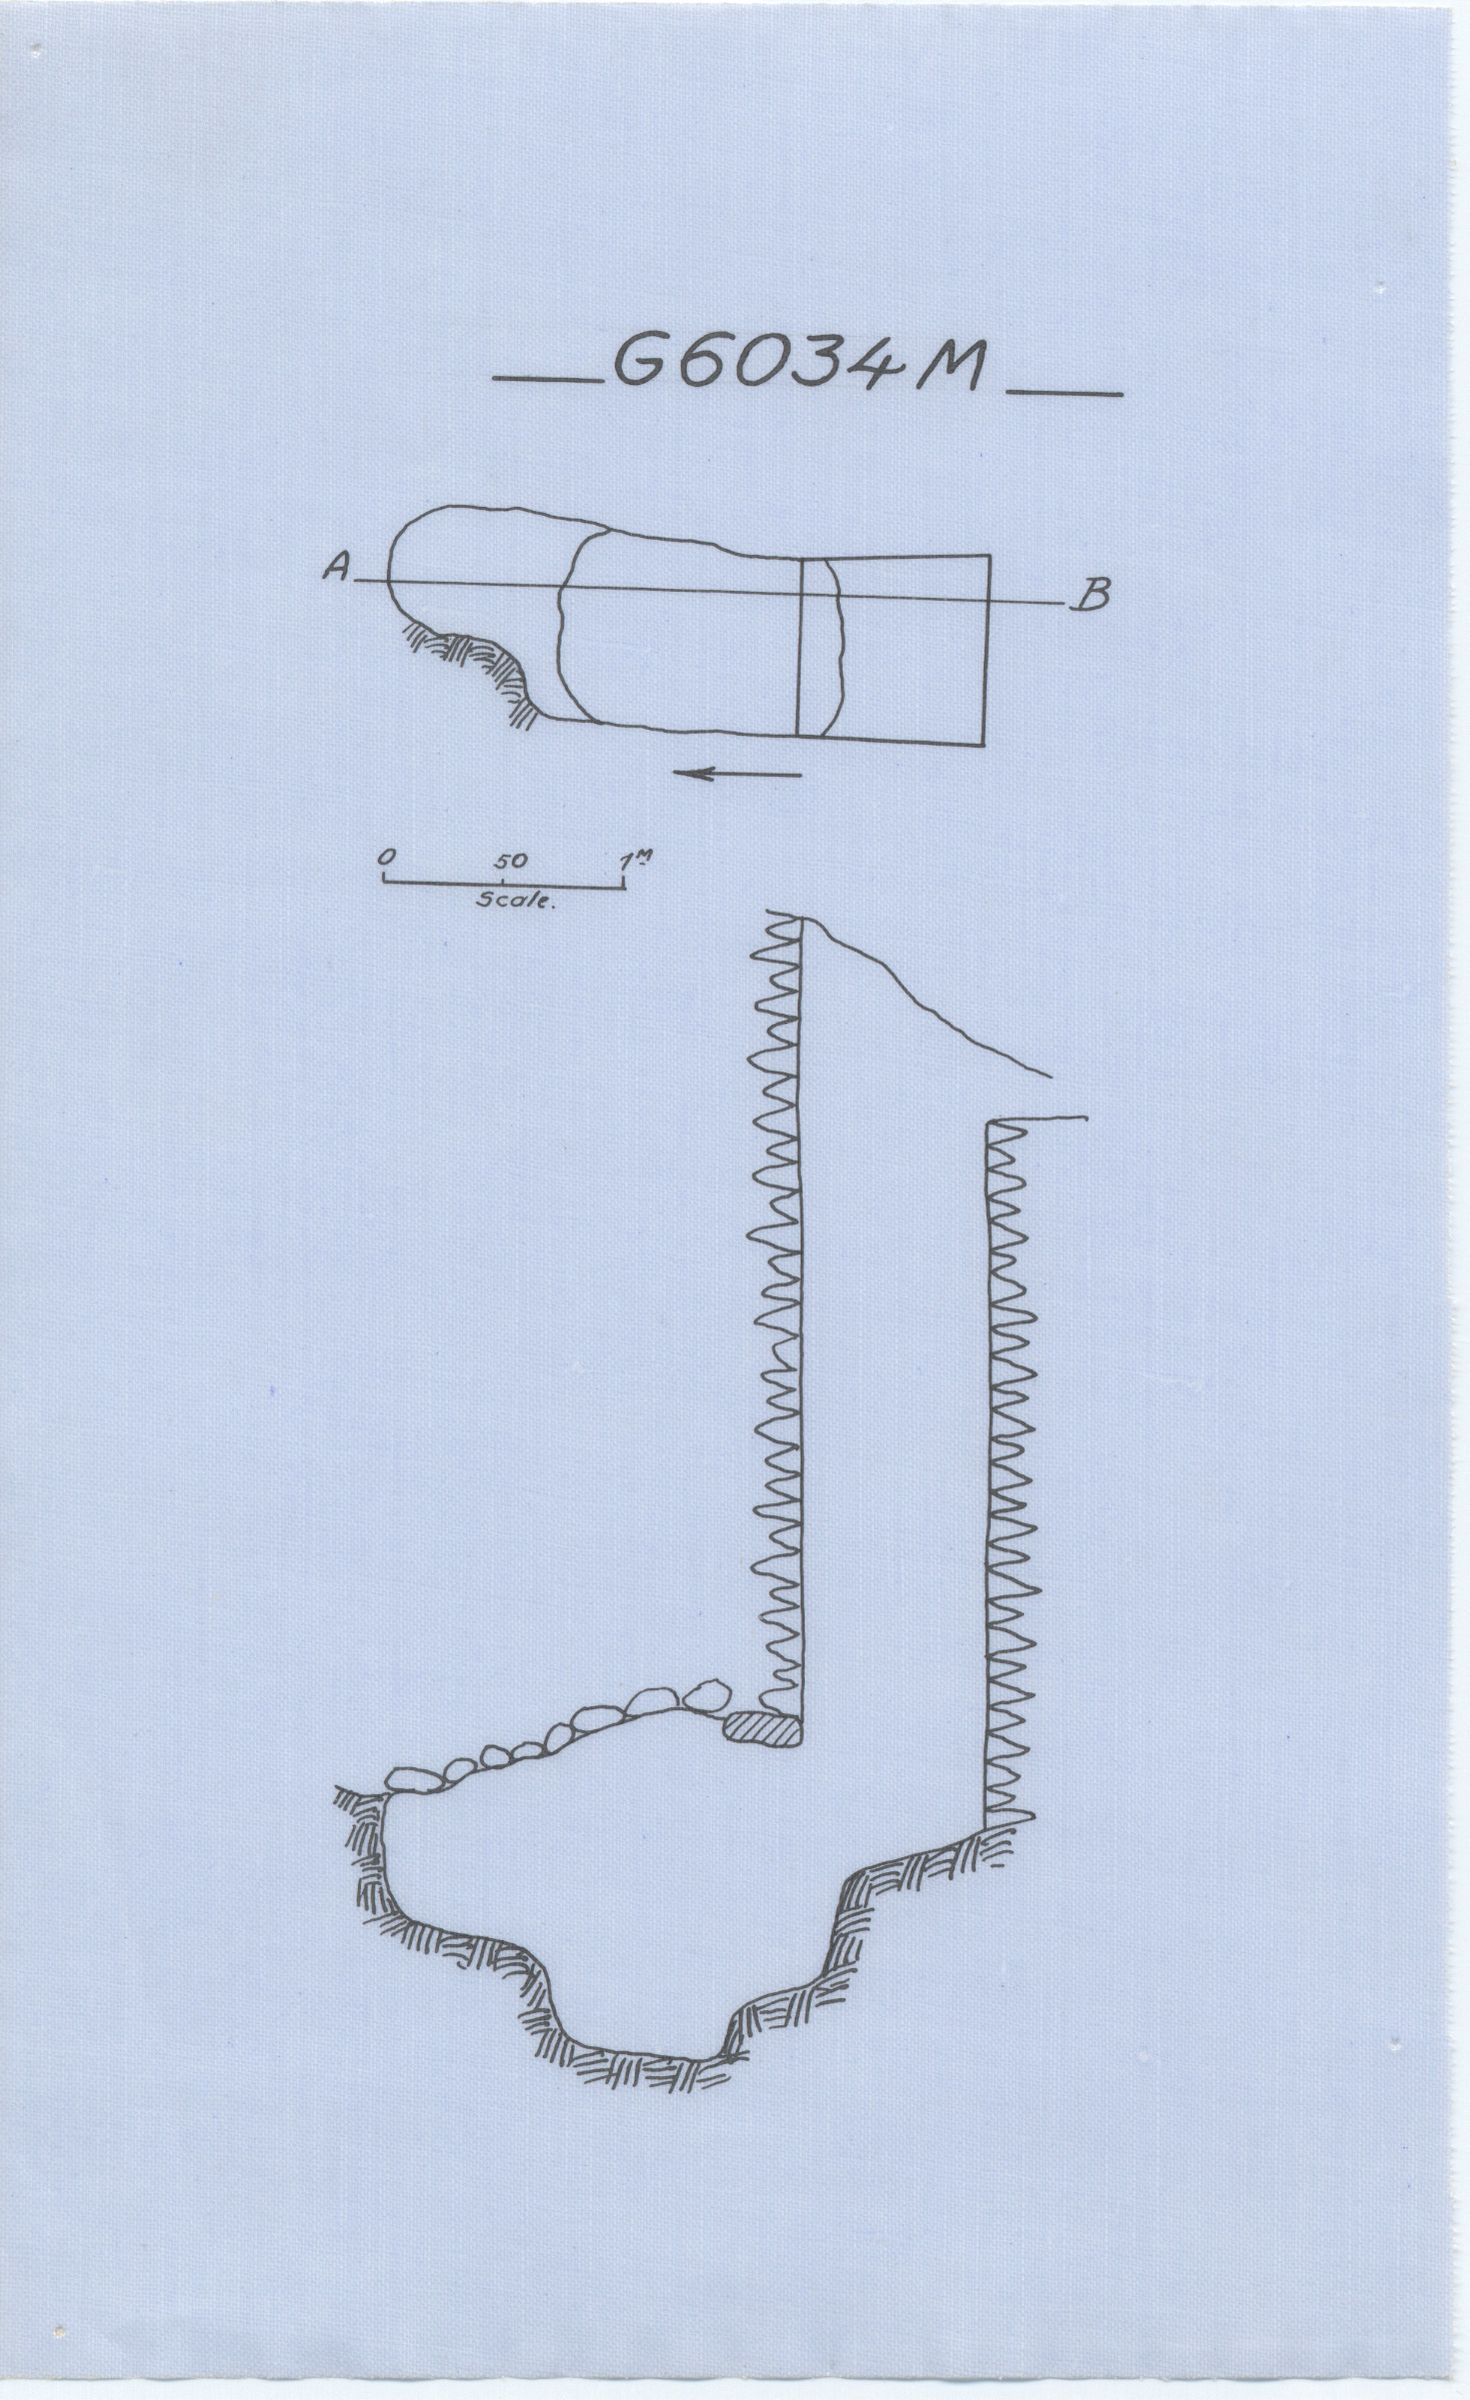 Maps and plans: G 6034, Shaft M